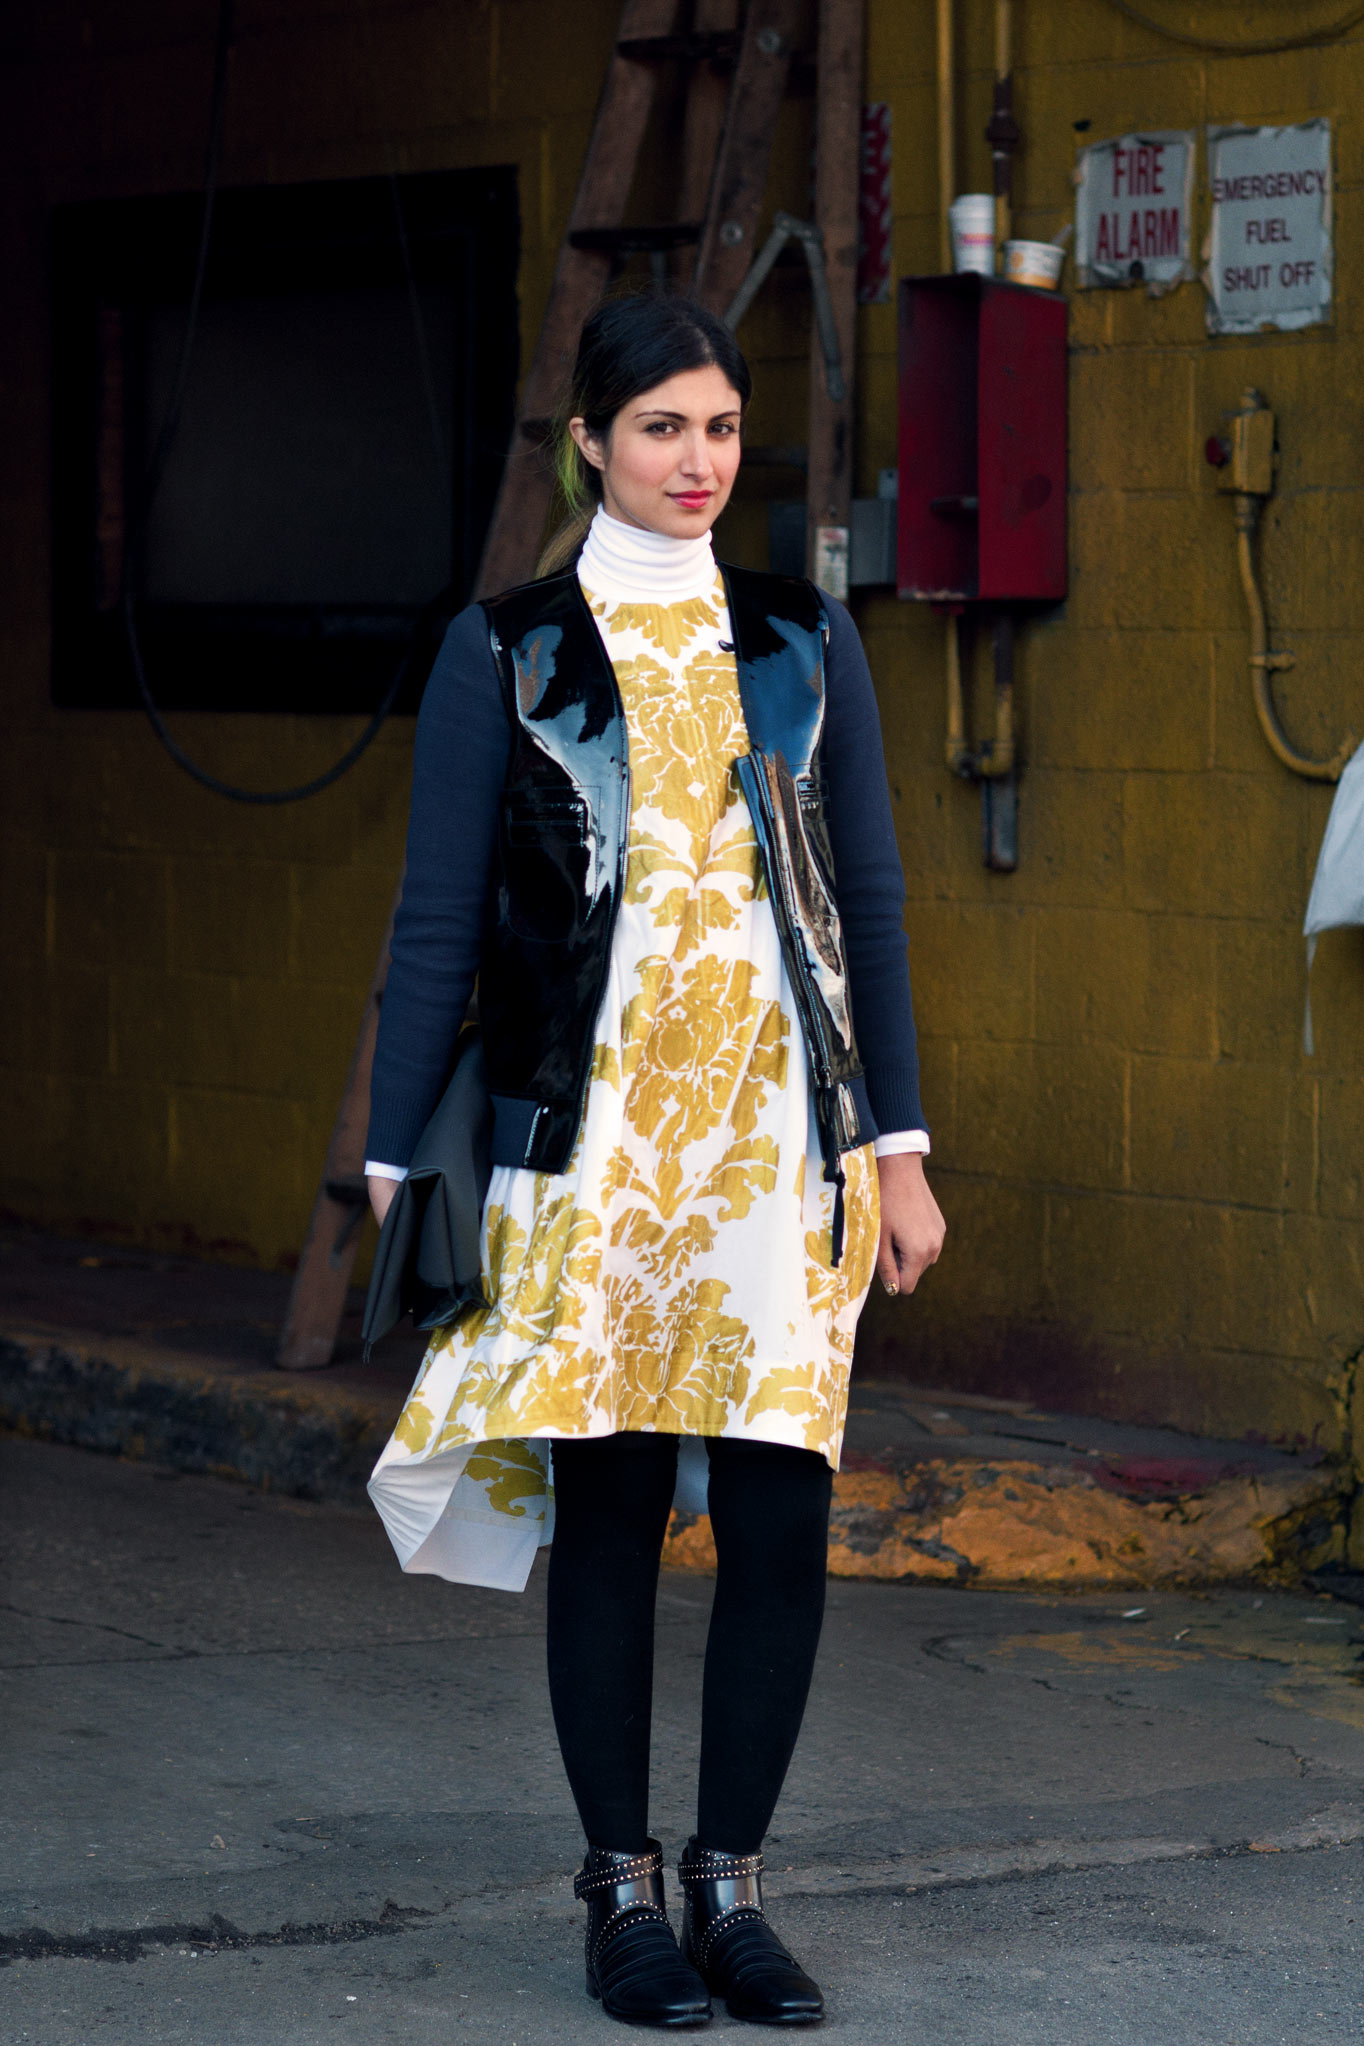 Preetma Singh at New York Fashion Week Fall/Winter 2013